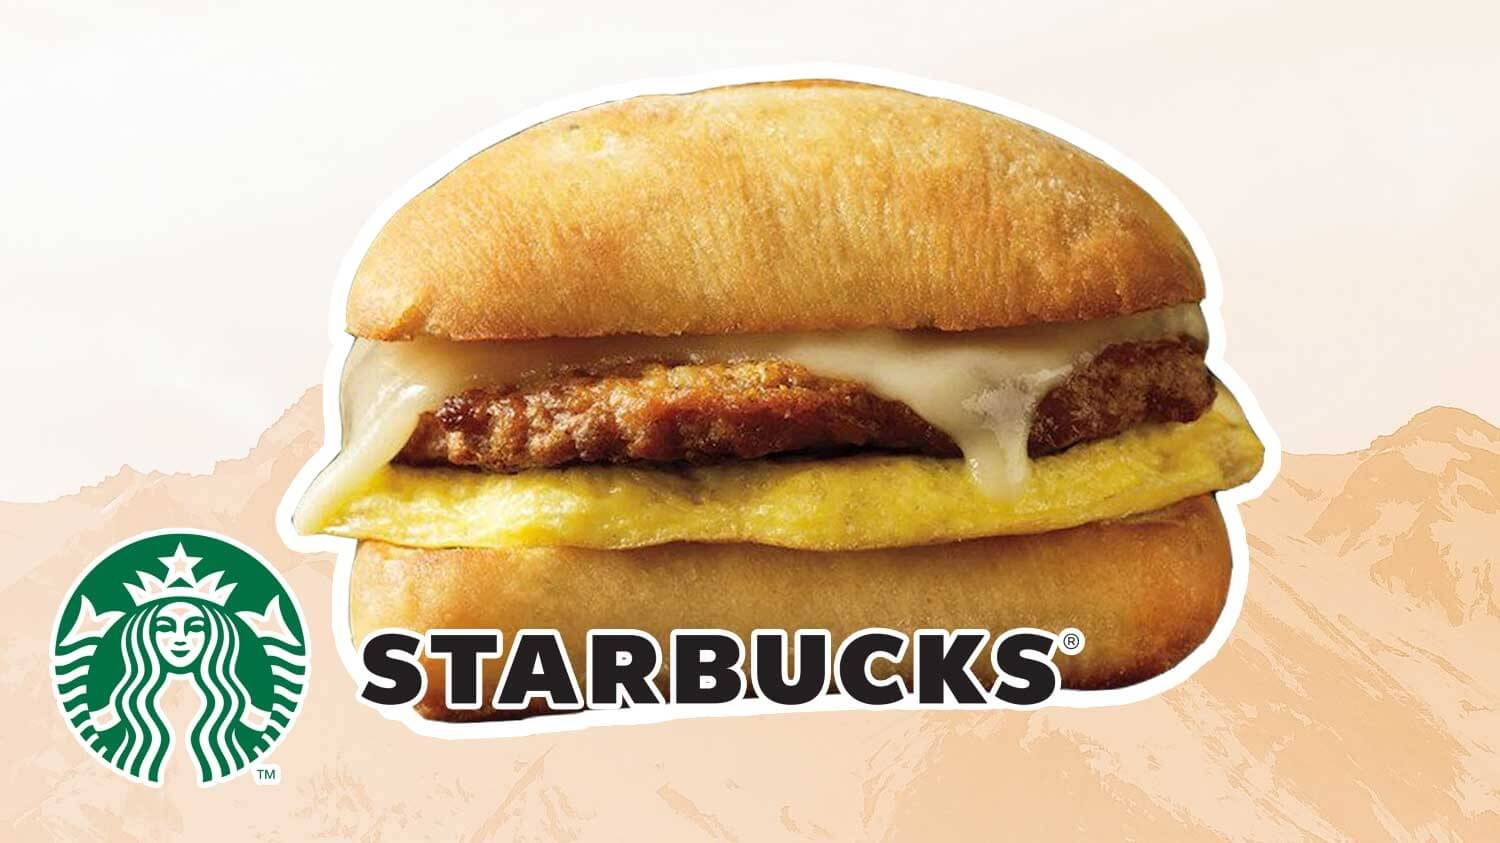 Starbucks Is Launching Vegan Beyond Meat Breakfast Sausages